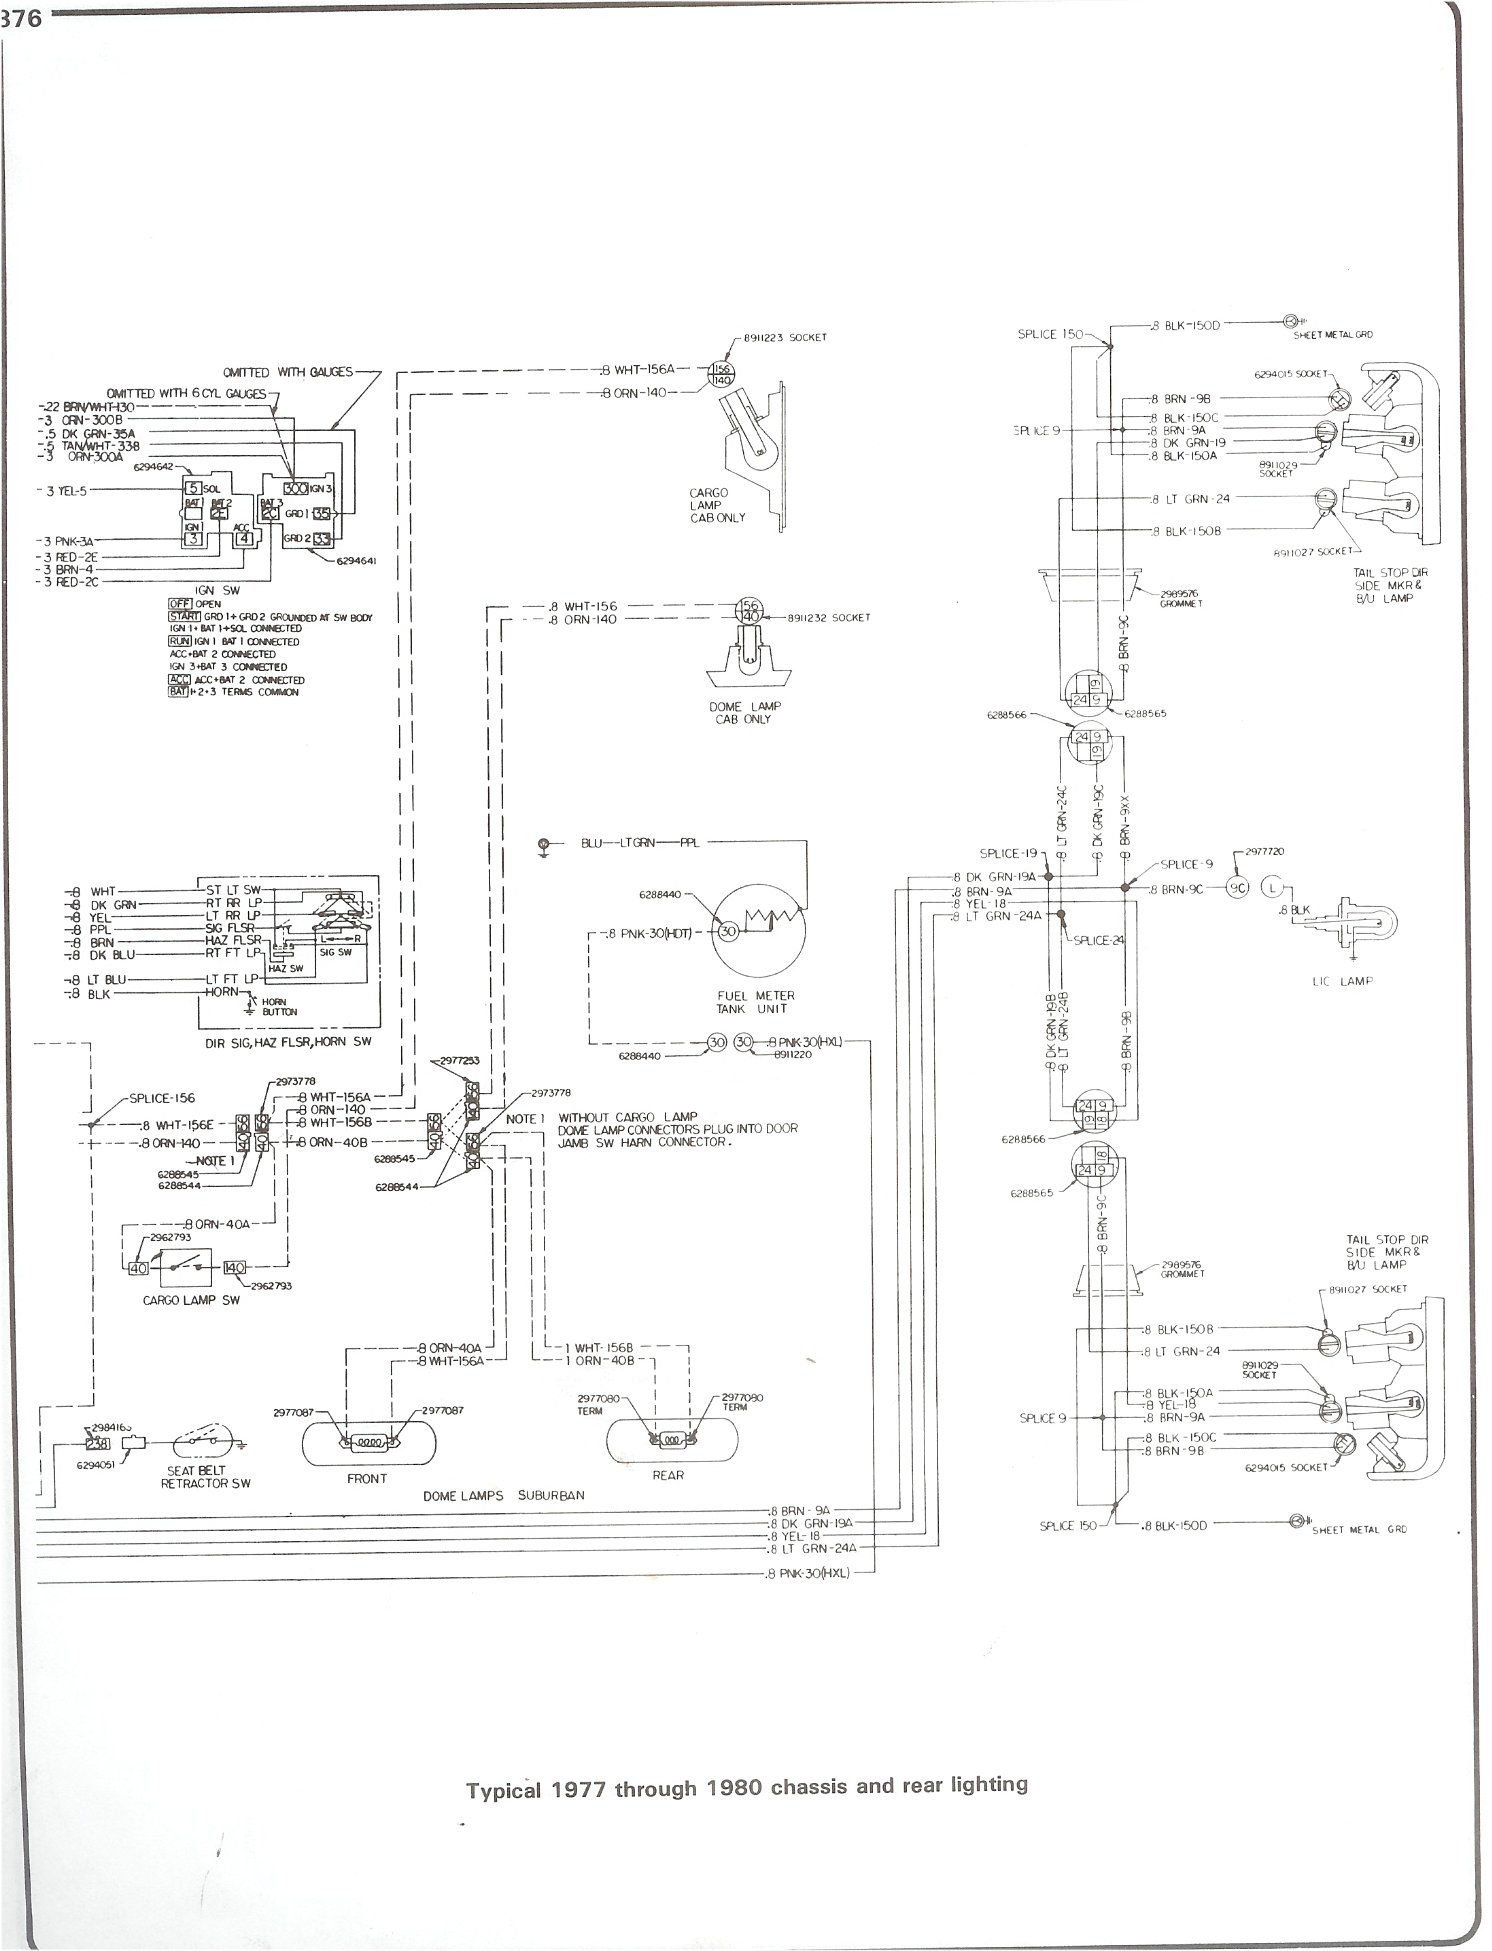 77 Silverado Wiring Harness Diagram Libraries Chevy Truck Diagrams77 Schematic Front Fender